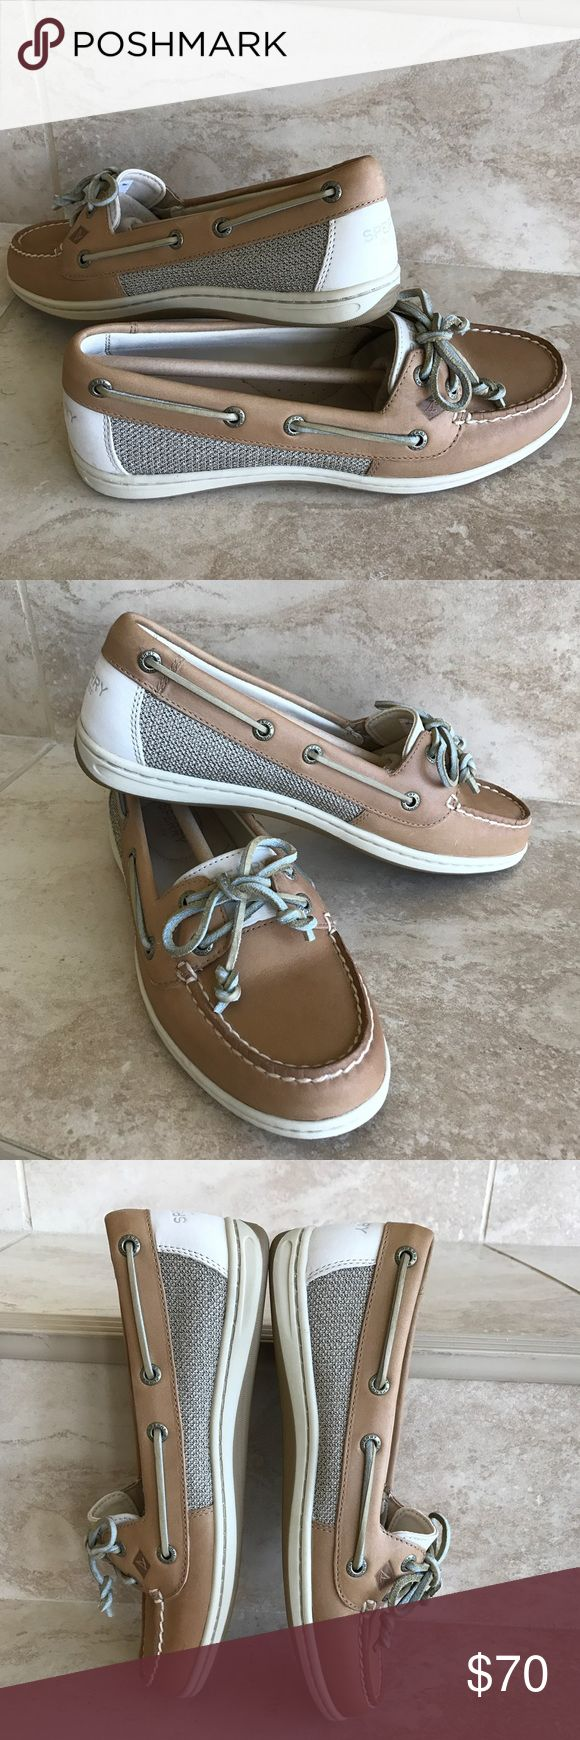 Sperry top sider firefish core linen/oat Boat shoe NIB sperry women's topsider firefish core leather boat shoes Sperry Shoes Flats & Loafers